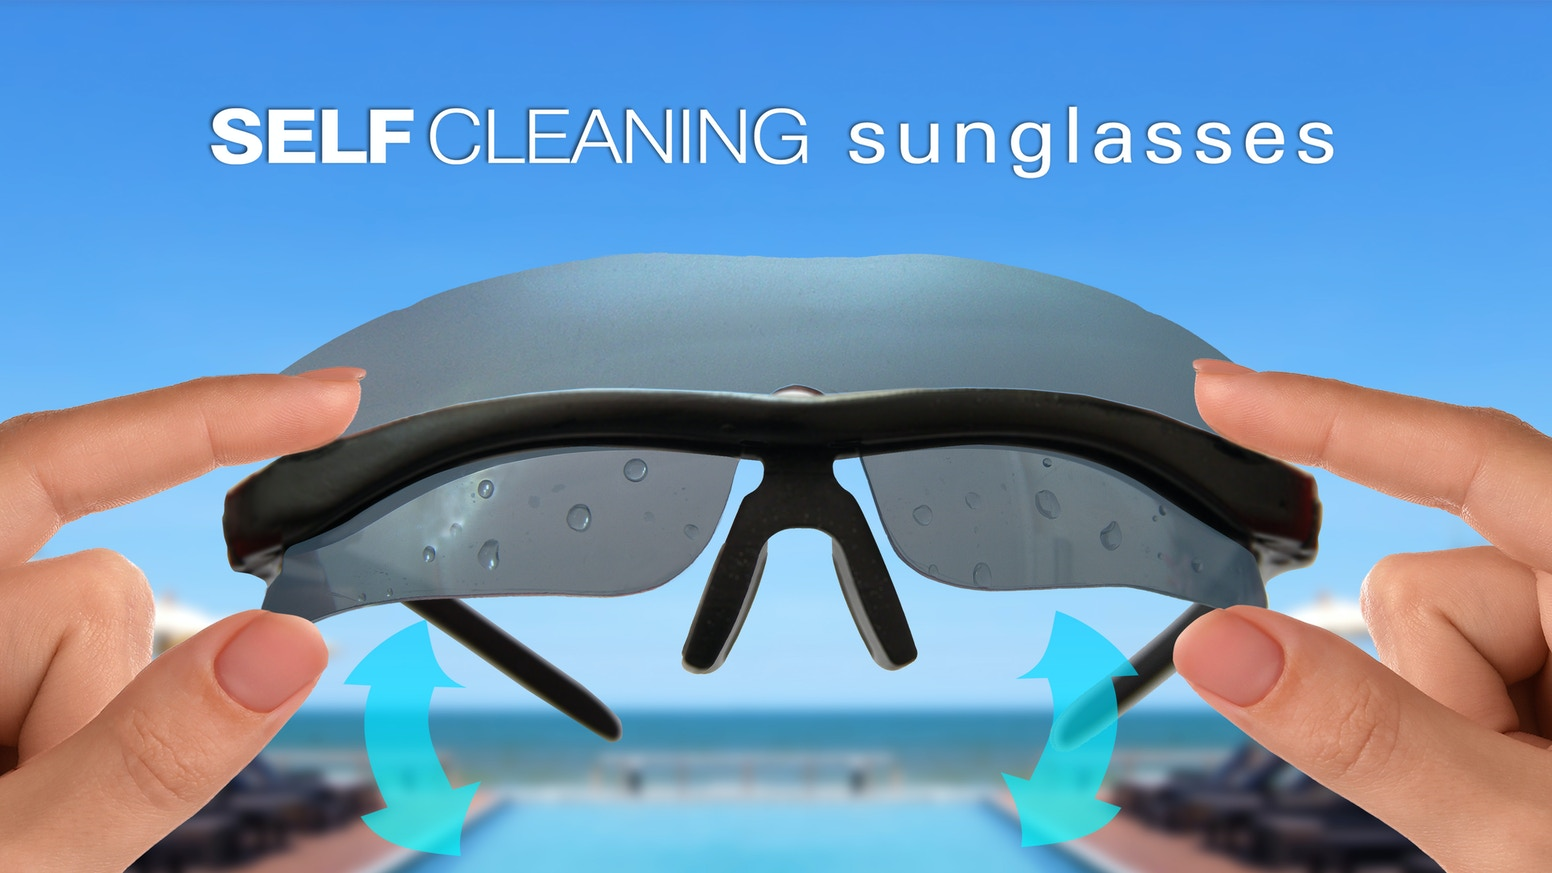 Sunglasses that can clean themselves when they get dirty. Just a few flicks to make the lens clean and clear.